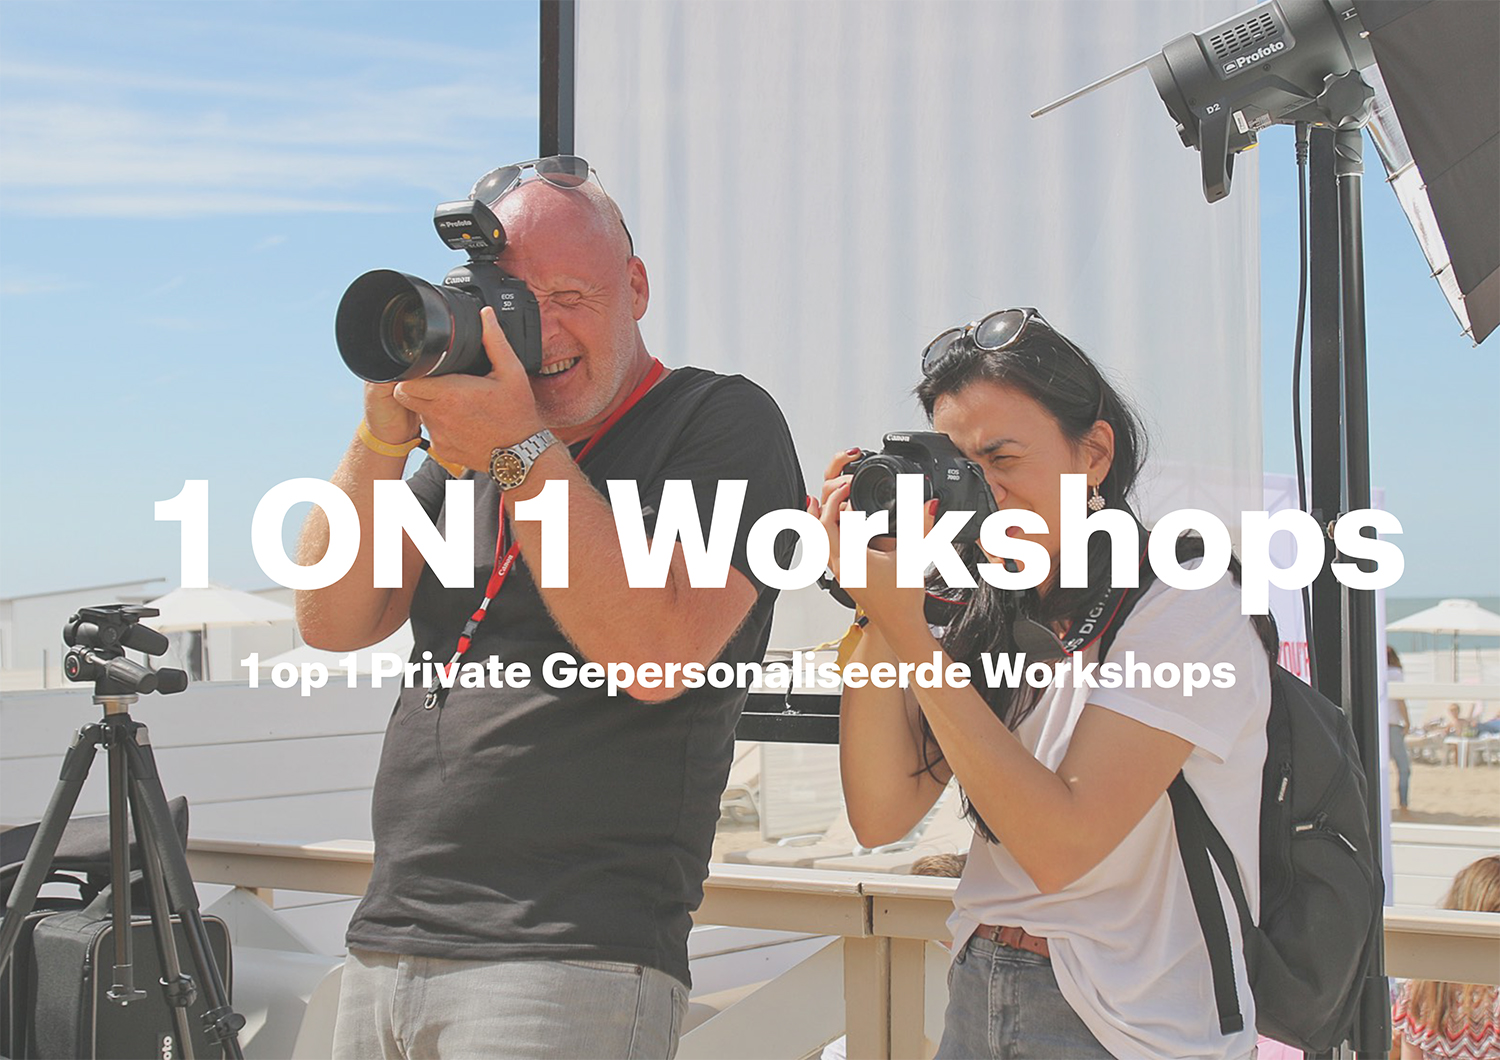 fotografie-workshops.jpg